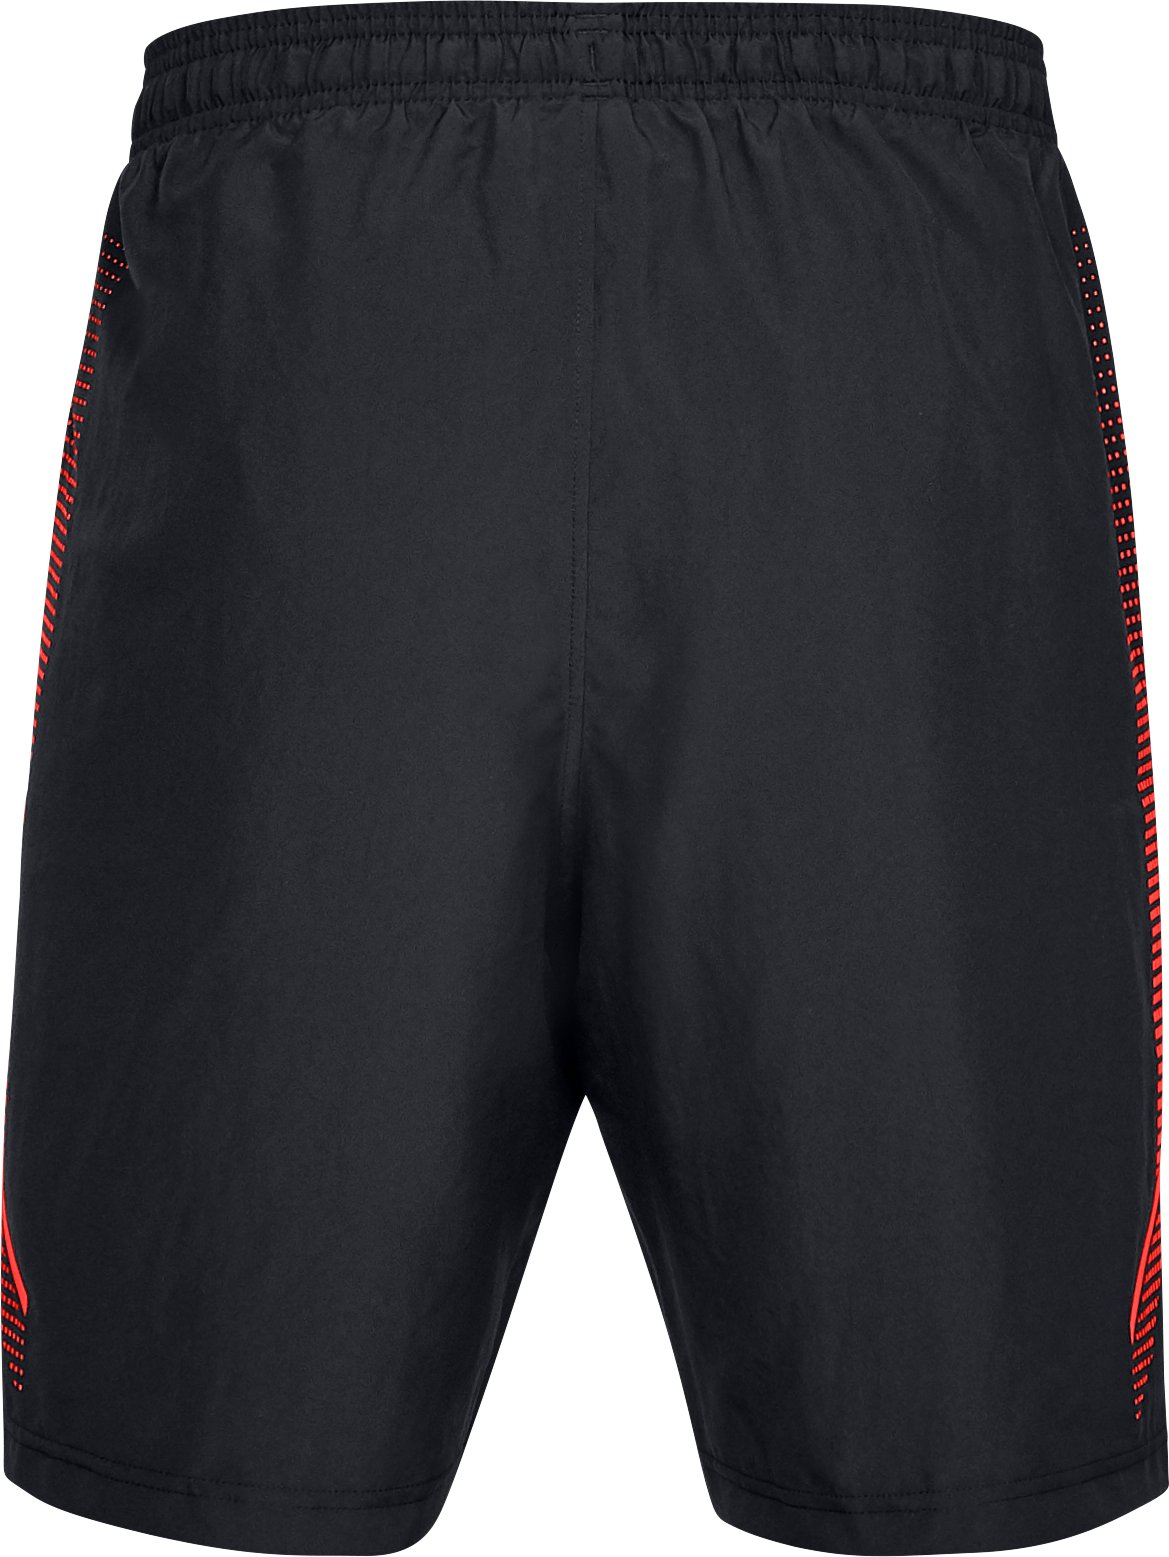 Men's UA Woven Graphic Shorts, Black ,